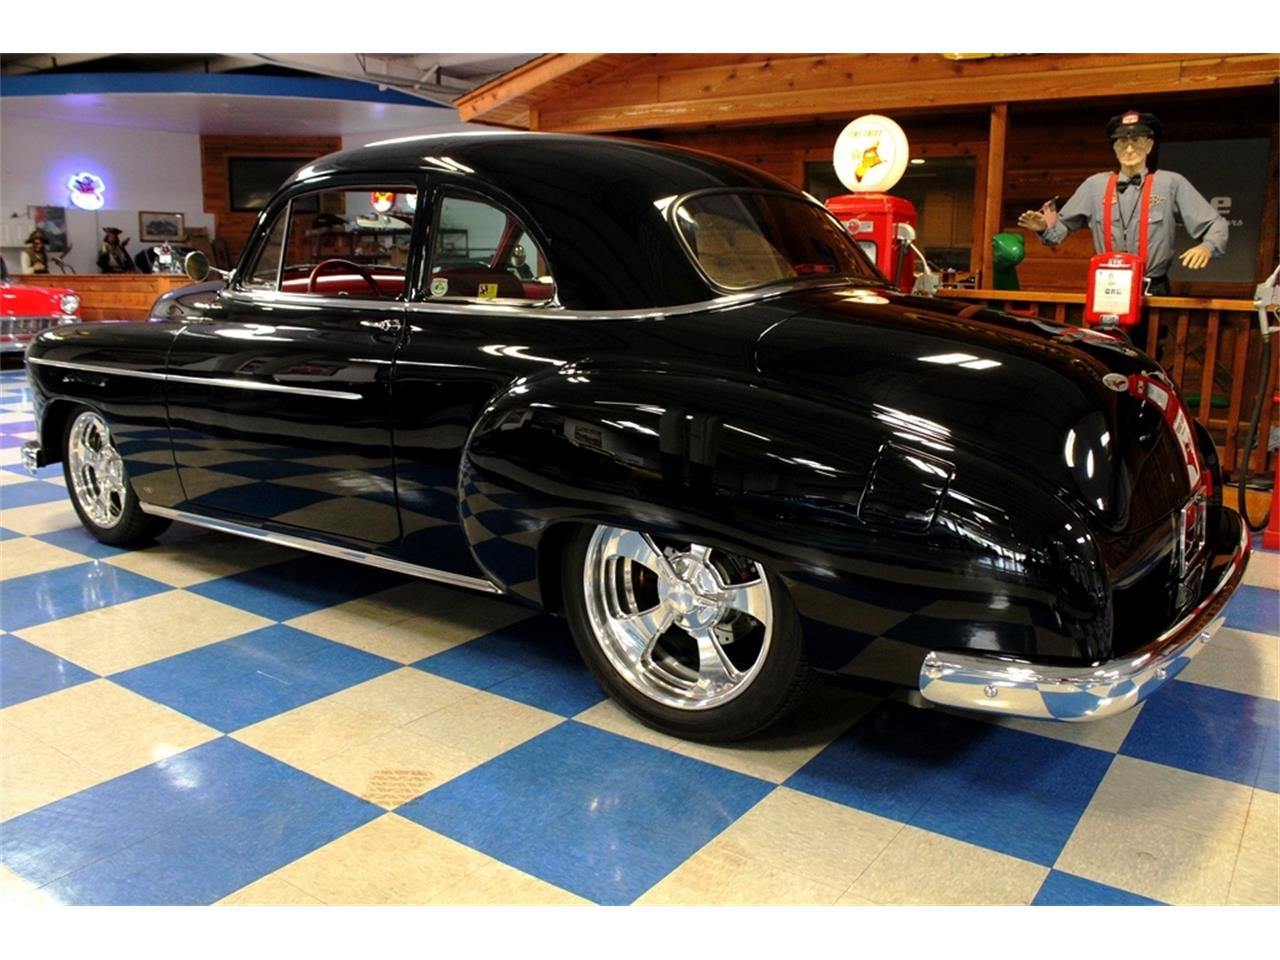 Large Picture of Classic '50 Chevrolet Styleline Deluxe - $79,900.00 Offered by A&E Classic Cars - QQK1